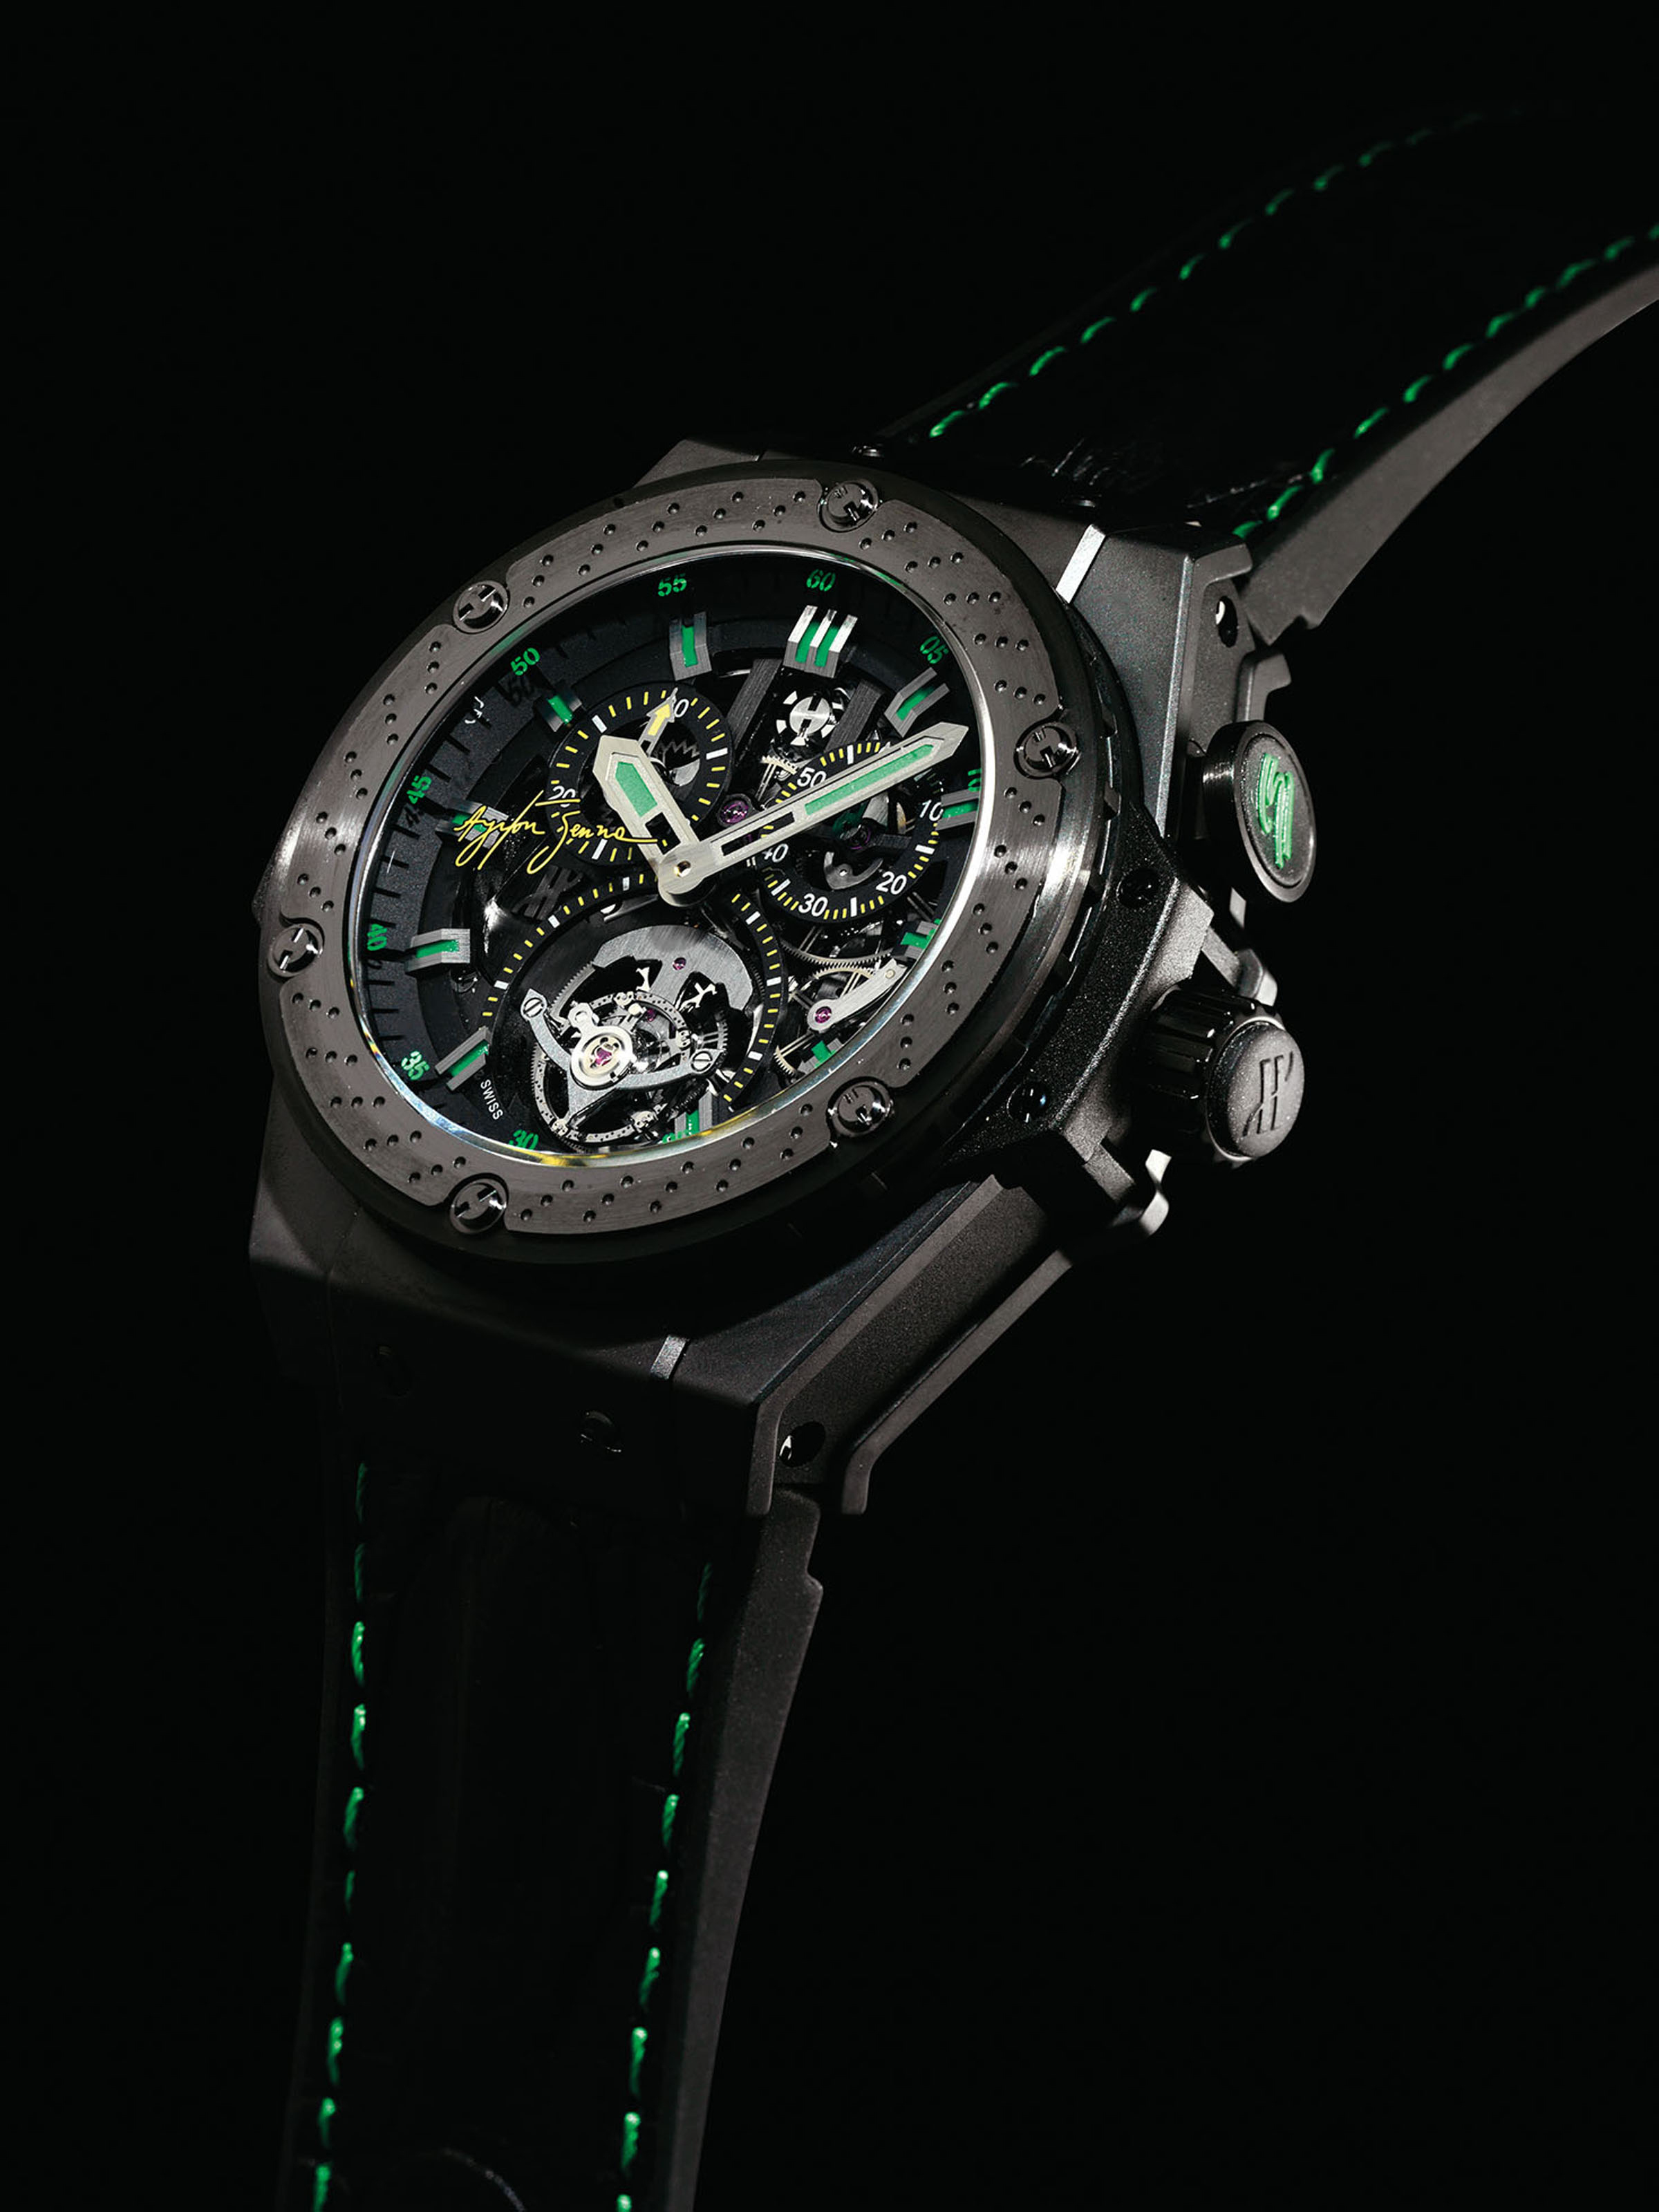 HUBLOT. A FINE AND OVERSIZED TITANIUM AND CERAMIC LIMITED EDITION SINGLE BUTTON CHRONOGRAPH TOURBILLON WRISTWATCH